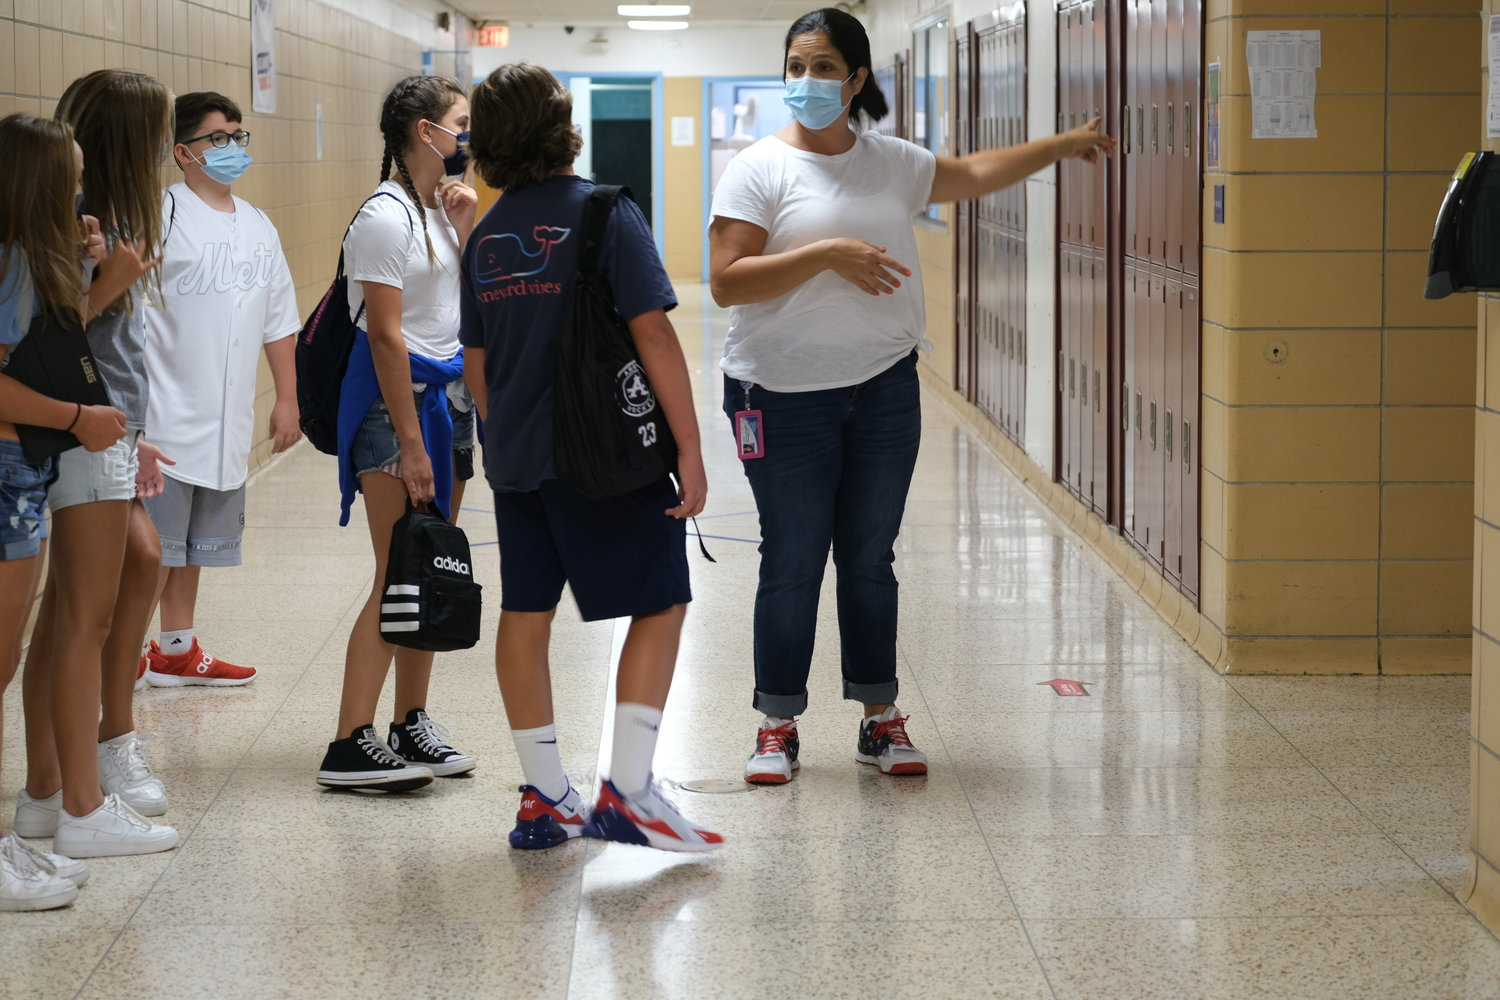 Christina Castilla-Lyson led a tour of seventh grade students at Oceanside Middle School on the first day back Sept. 8.